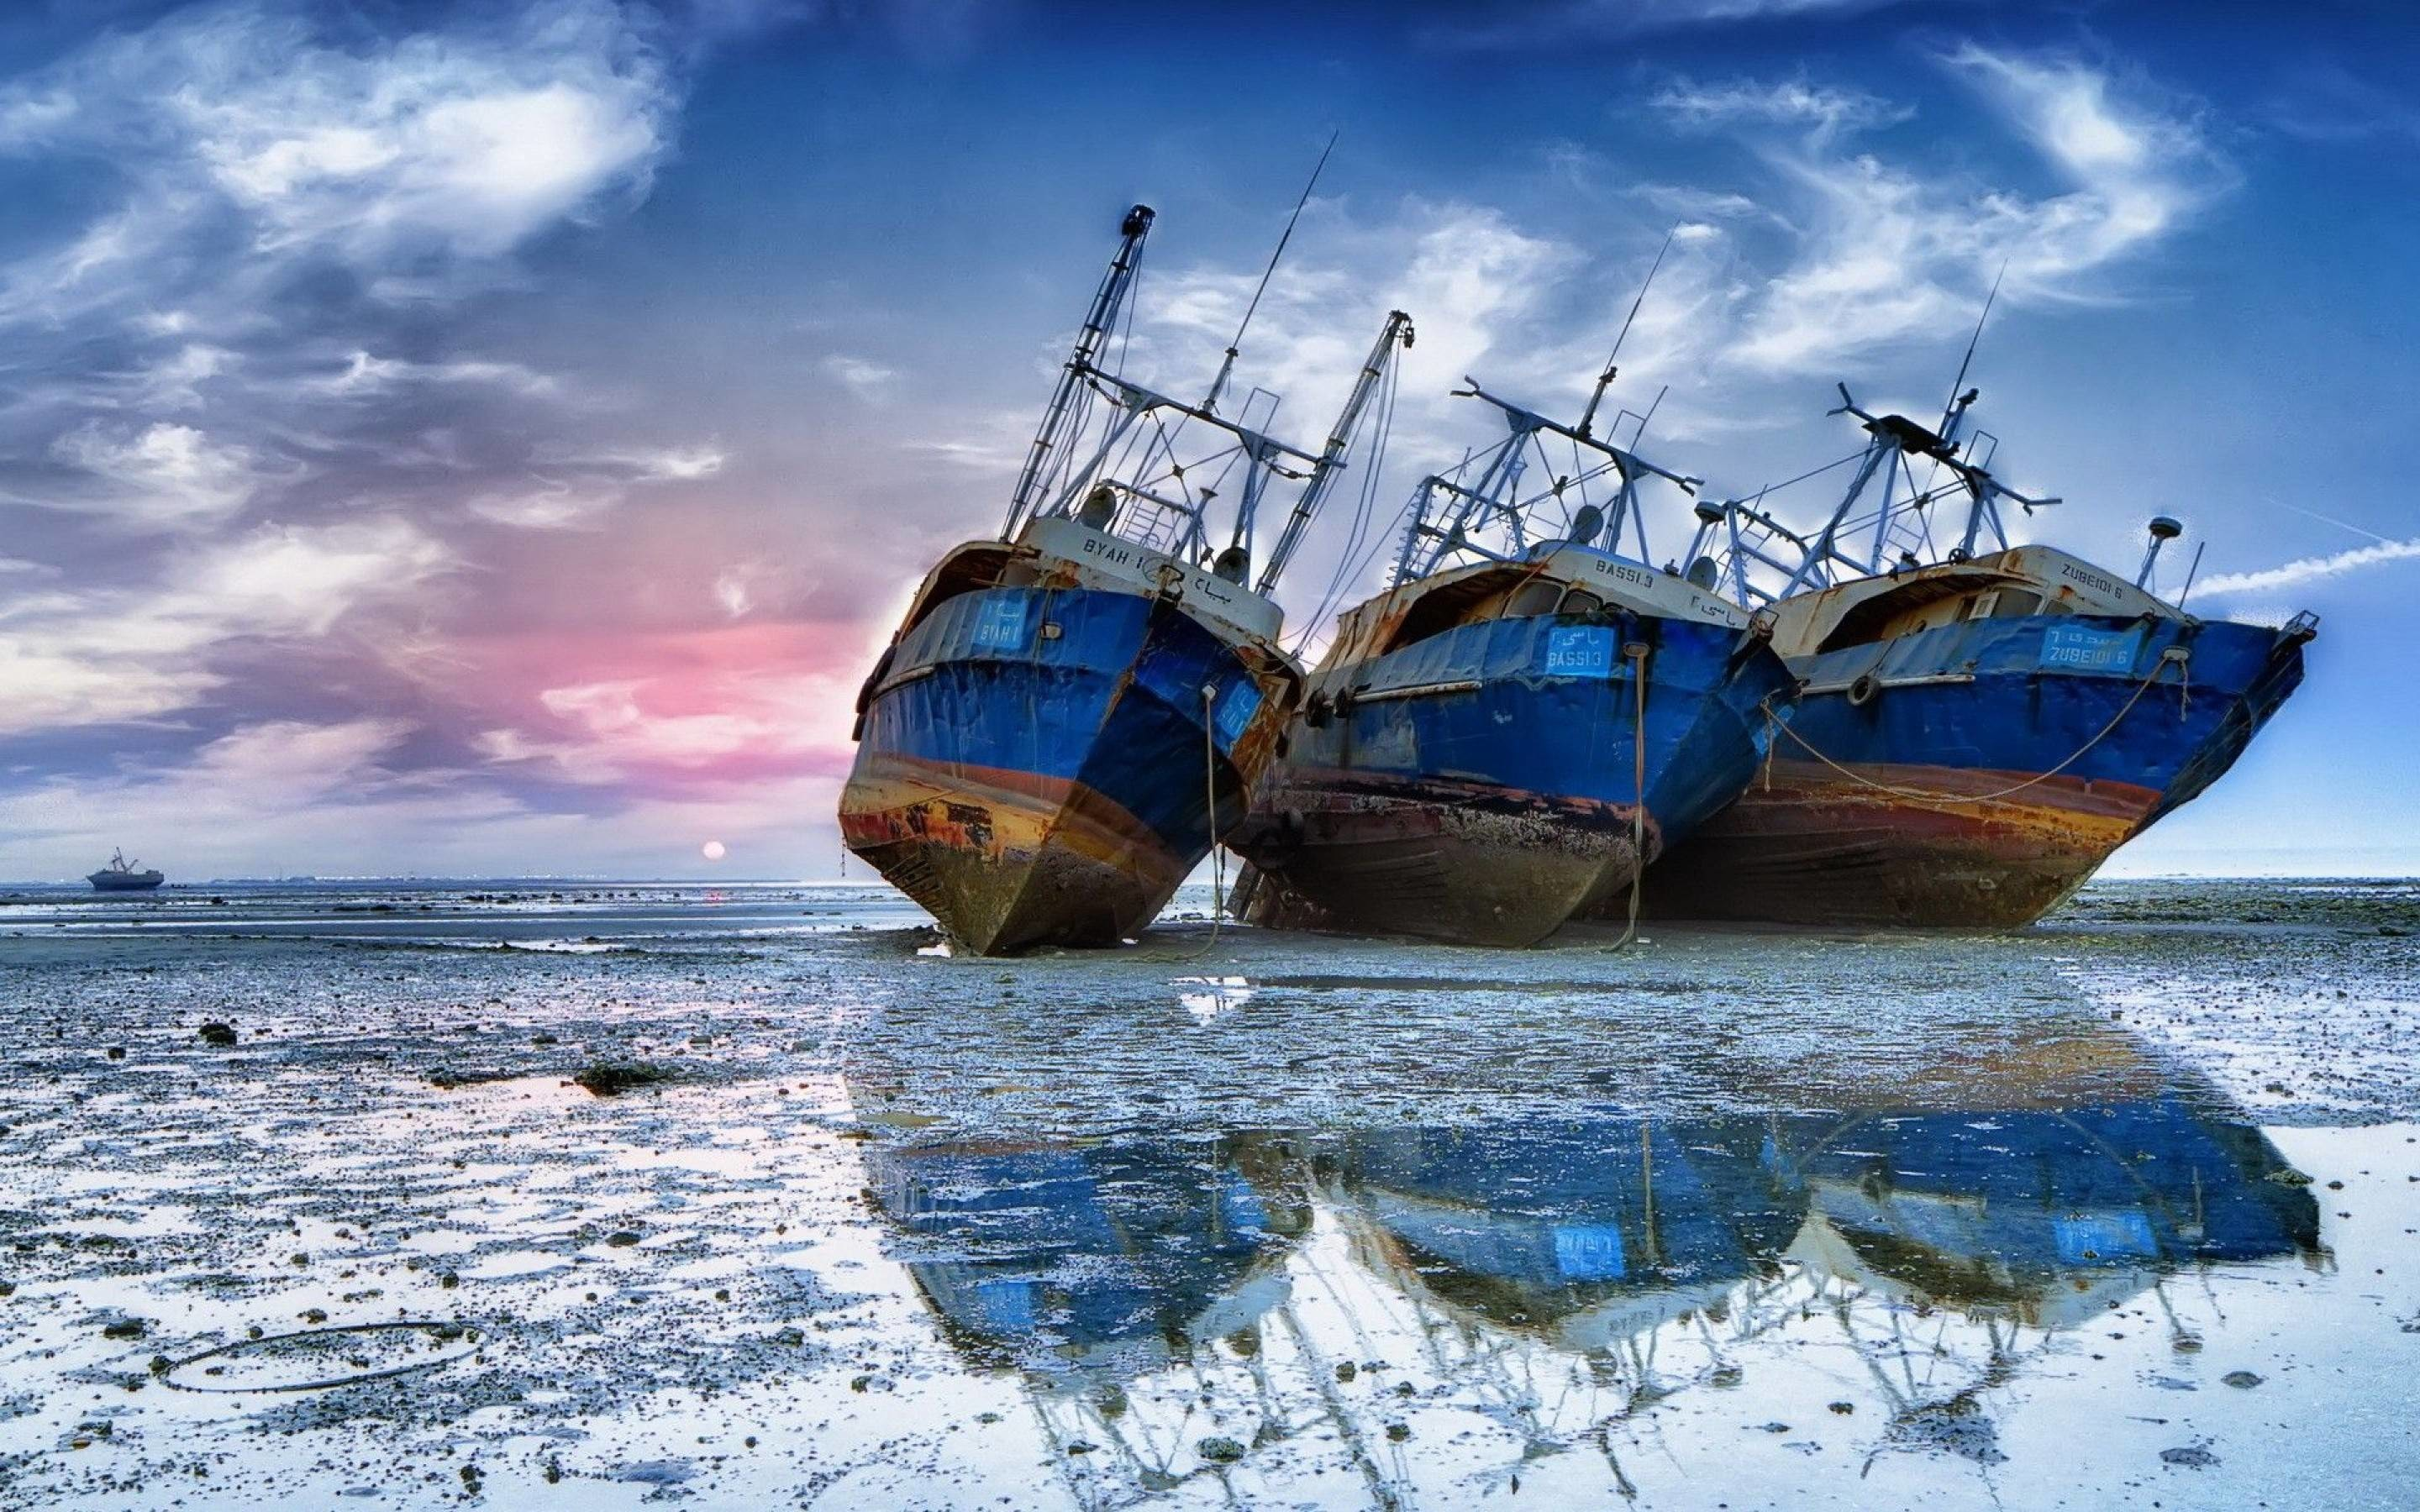 Res: 2880x1800, Shipwreck Wallpapers - Full HD wallpaper search